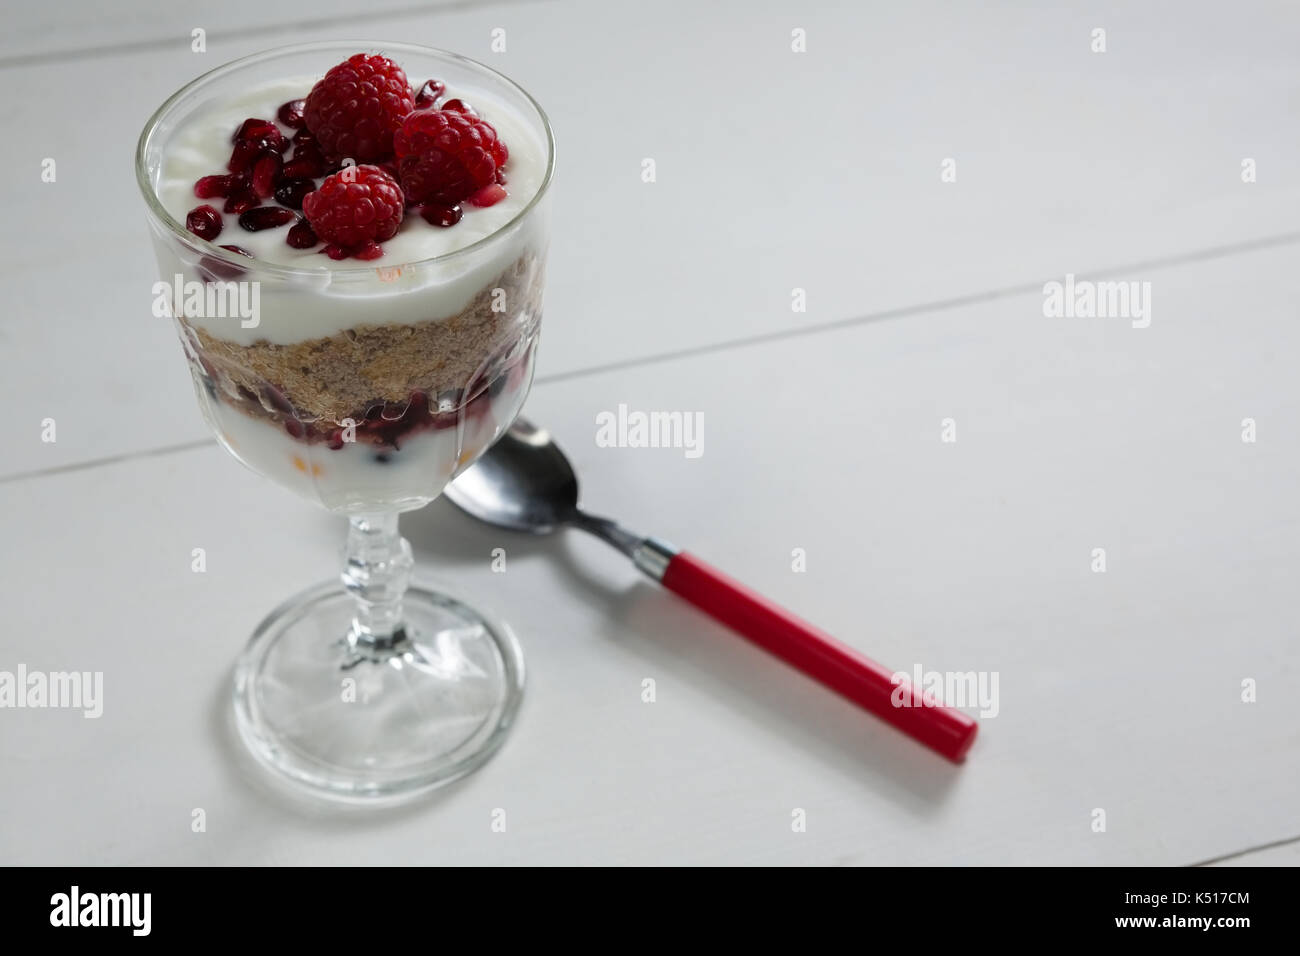 Cup of yogurt with raspberry and pomegranate on white background - Stock Image